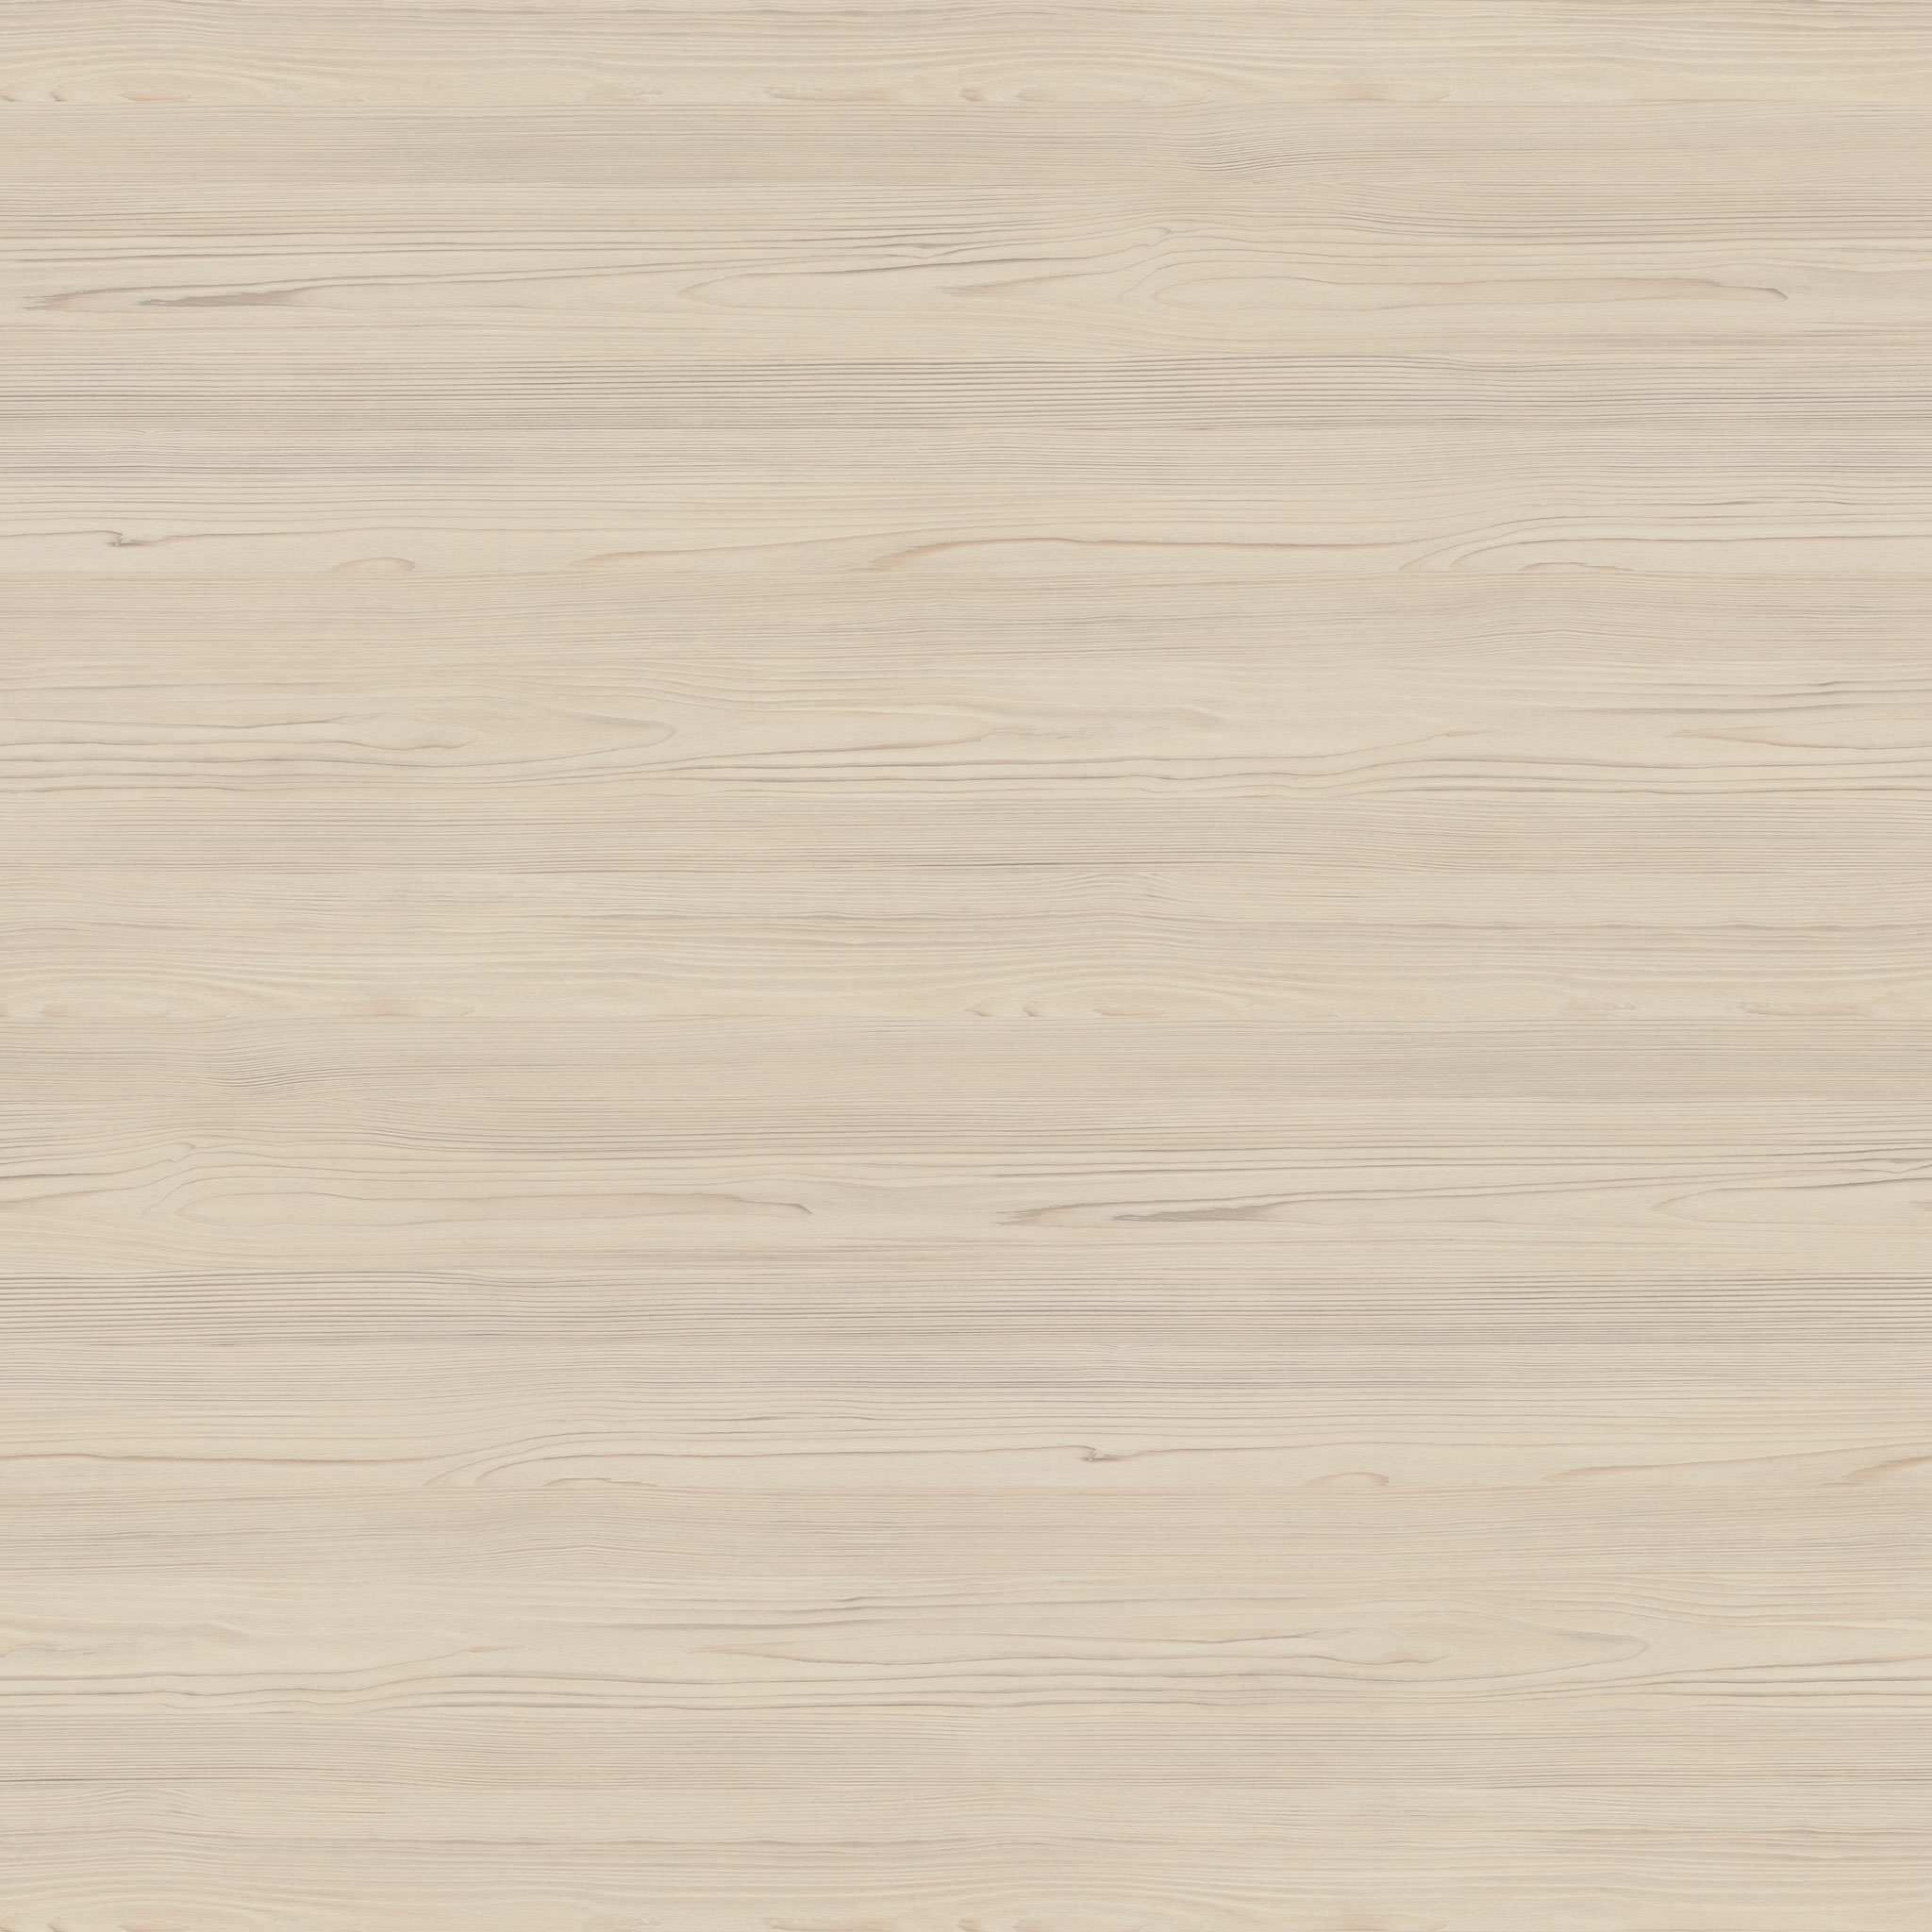 Egger Contemporary White Fleetwood kitchen worktop sample.